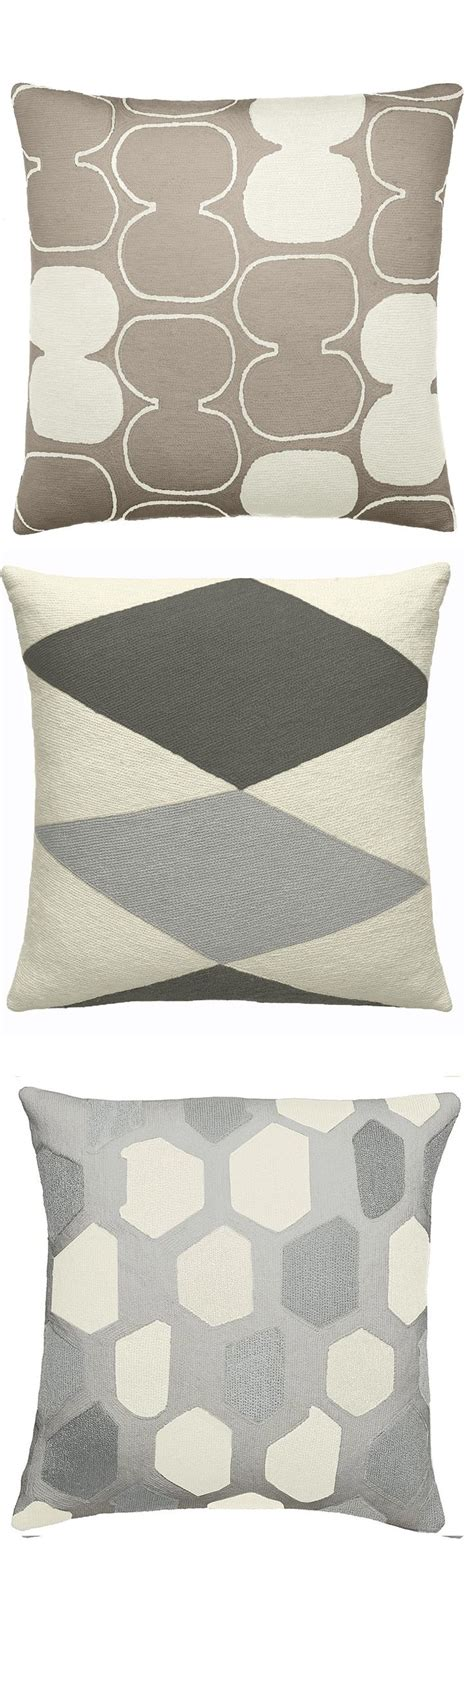 grey sofa throw pillows 17 best images about gray pillows on pinterest sofa